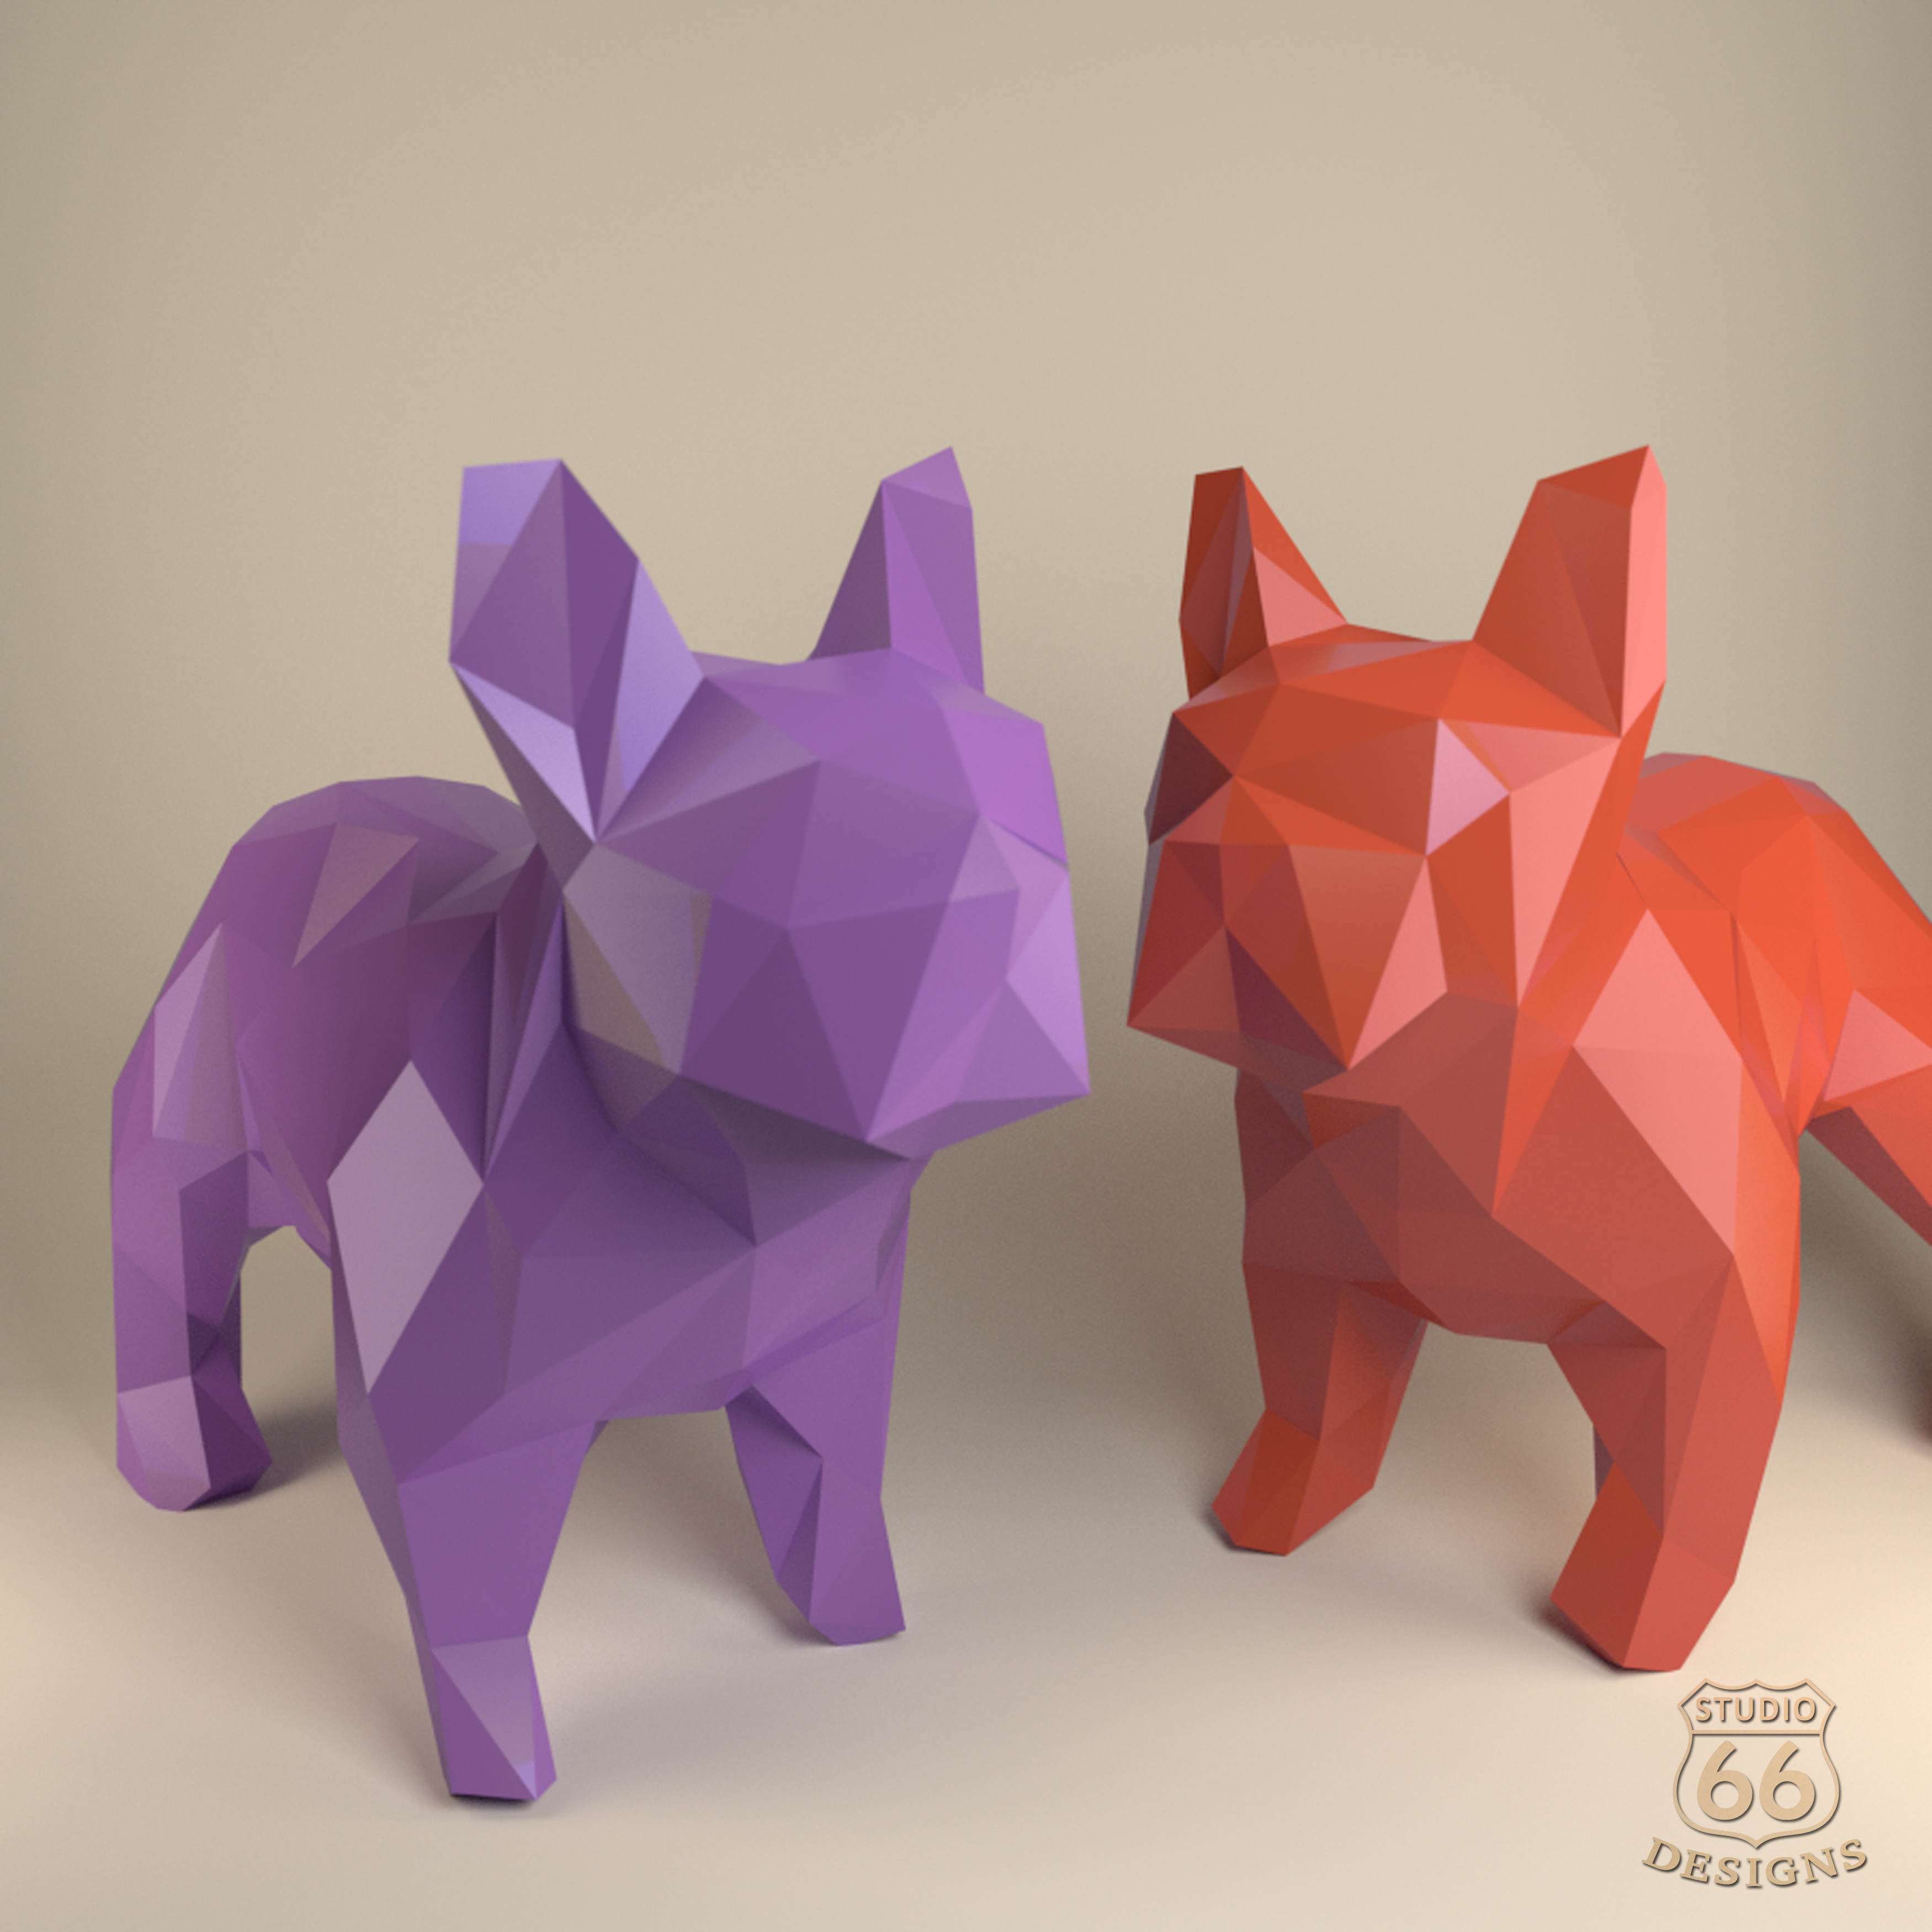 French Bulldog Paper Dog Papercraft Bulldog Paper Animals Papertoy Home Decor Frenchie 3d Papercraft Model Lowpoly Diy Hobby Idea